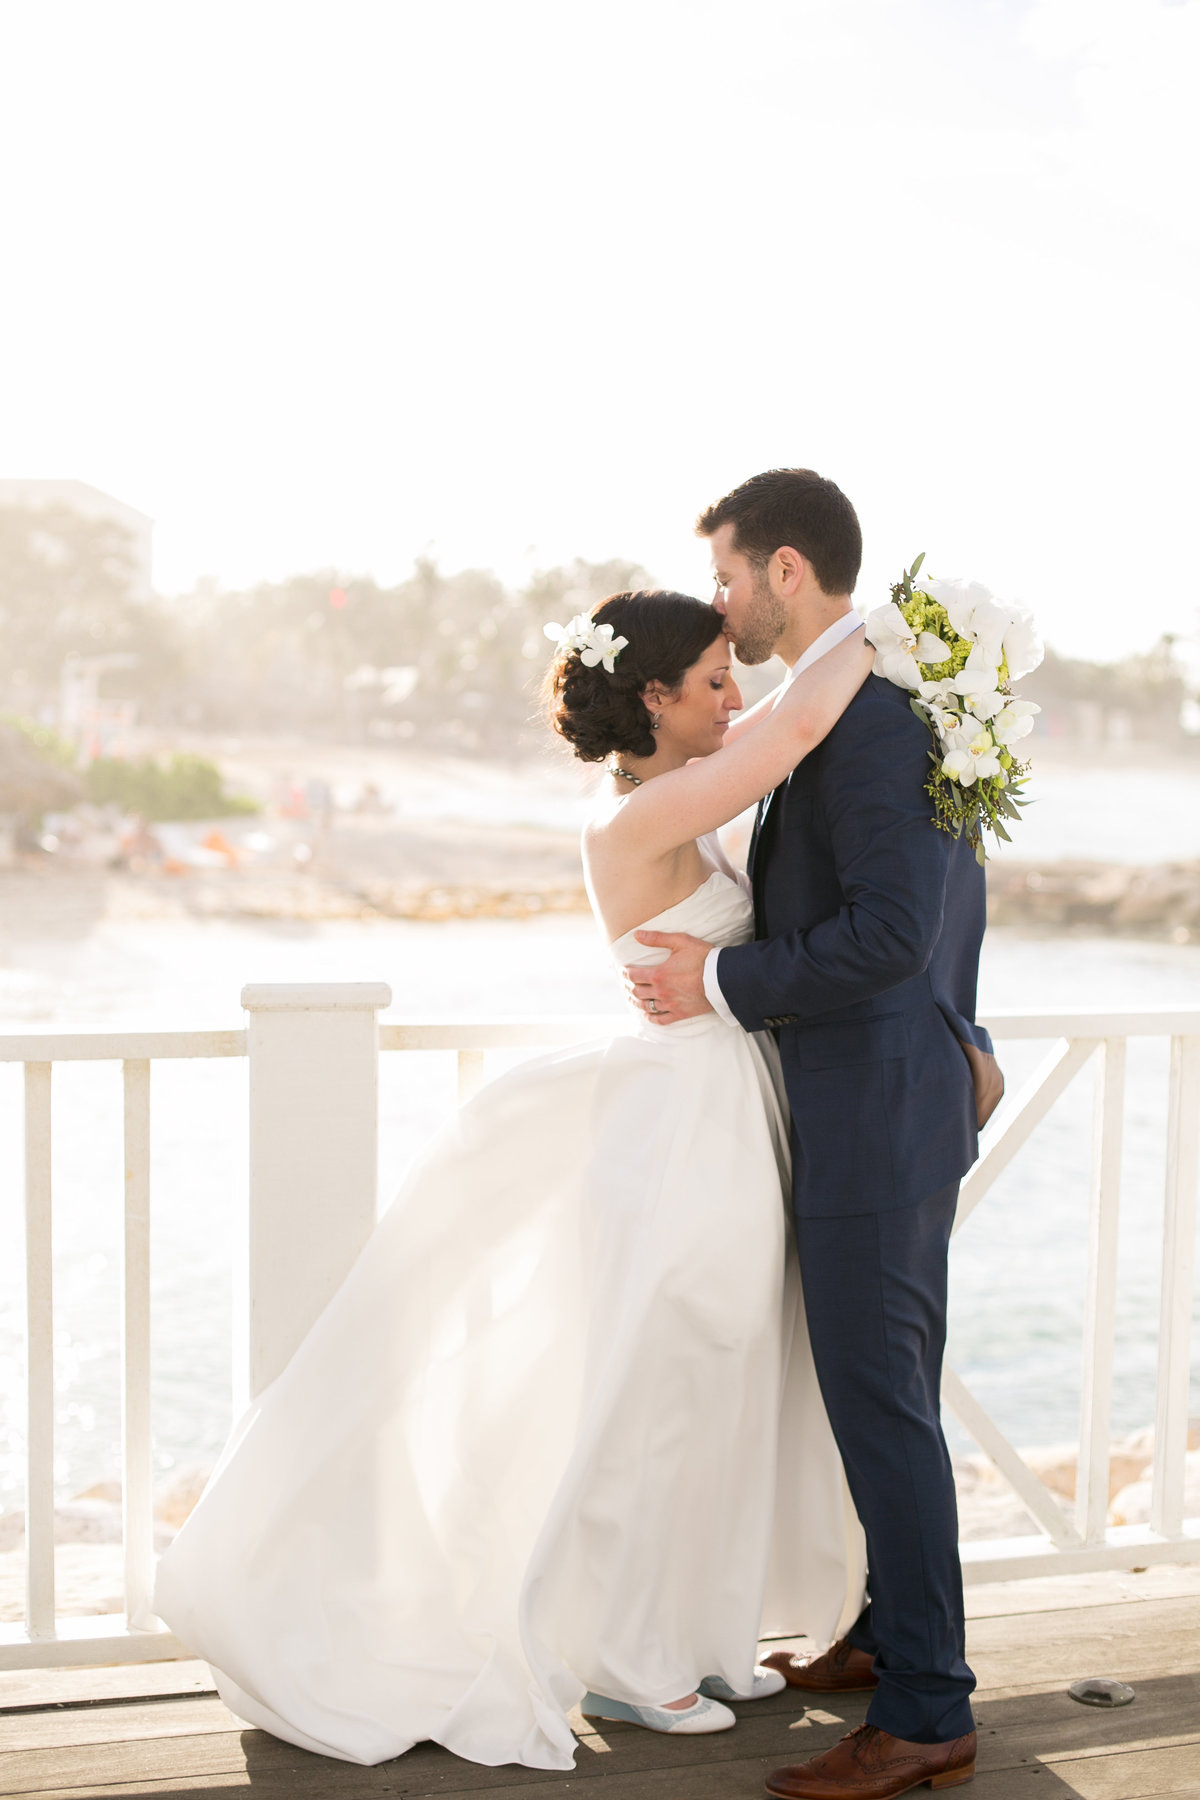 Bride and groom standing on a pier for their Jamaica Destination Wedding